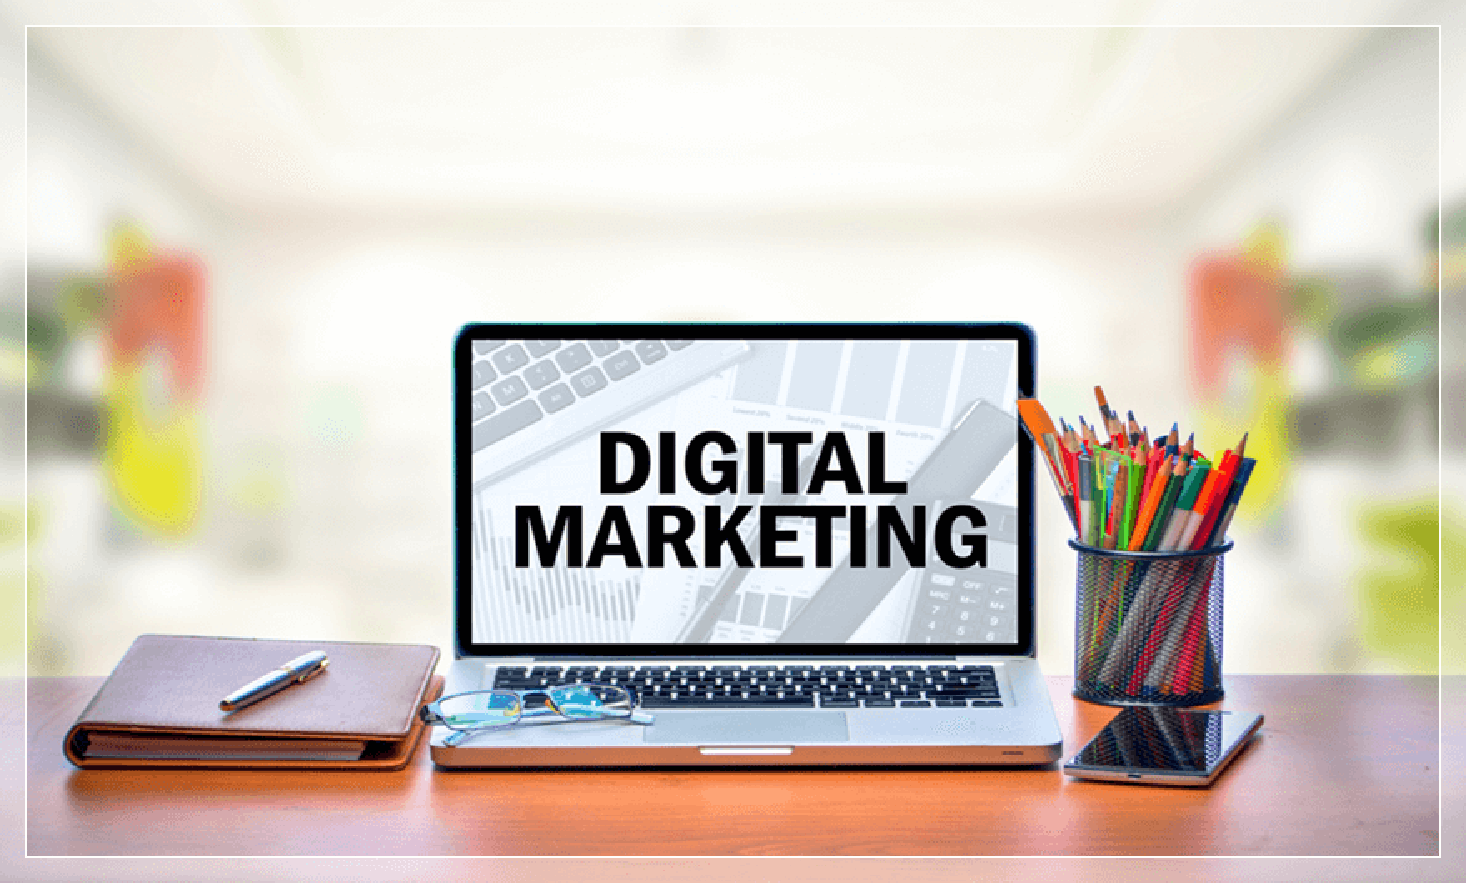 Best Digital Marketing Course in Haryana (India Saminus private limited)